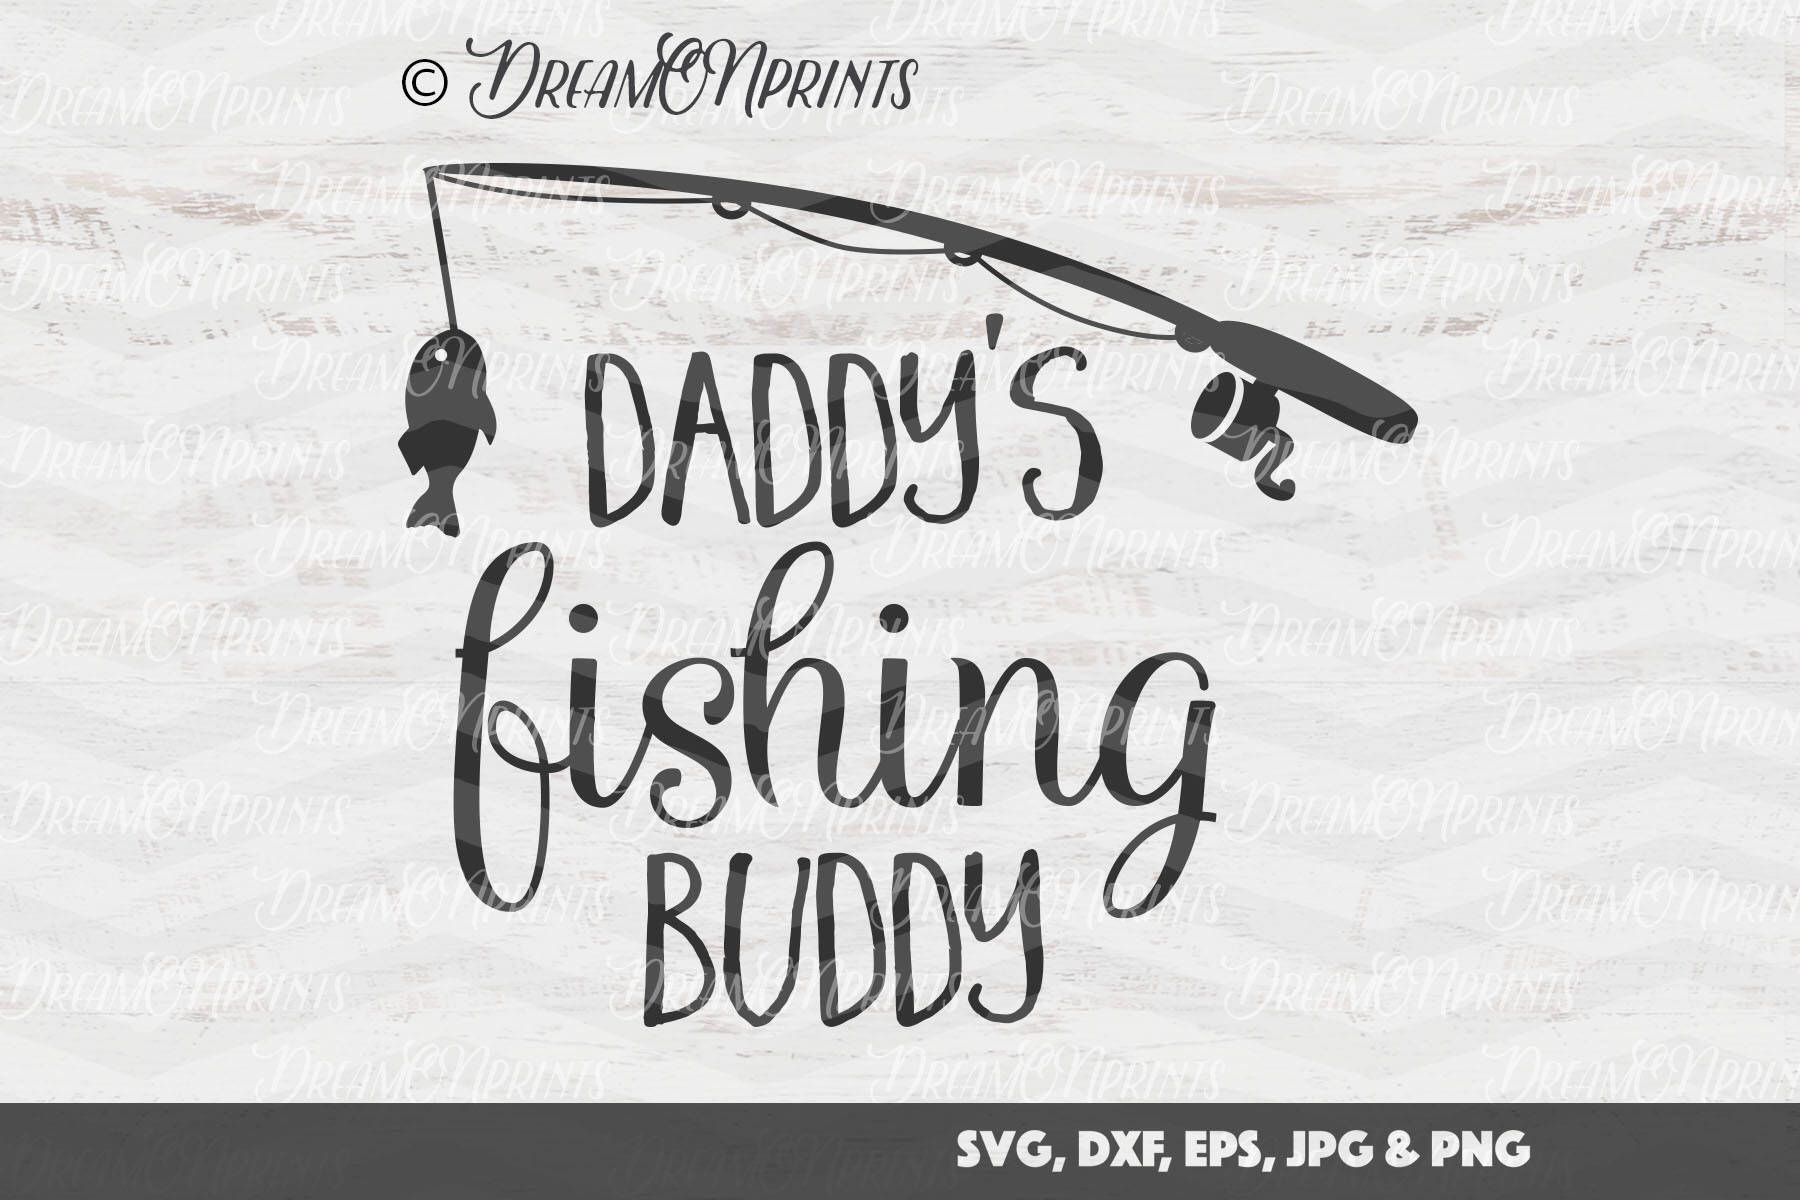 67324b2ed Daddy's Fishing Buddy SVG, Fish SVG, Fishing Pole Cut Files, Lake svg  Hunting SVG Camping svg for Cricut, Silhouette and More SVDP169